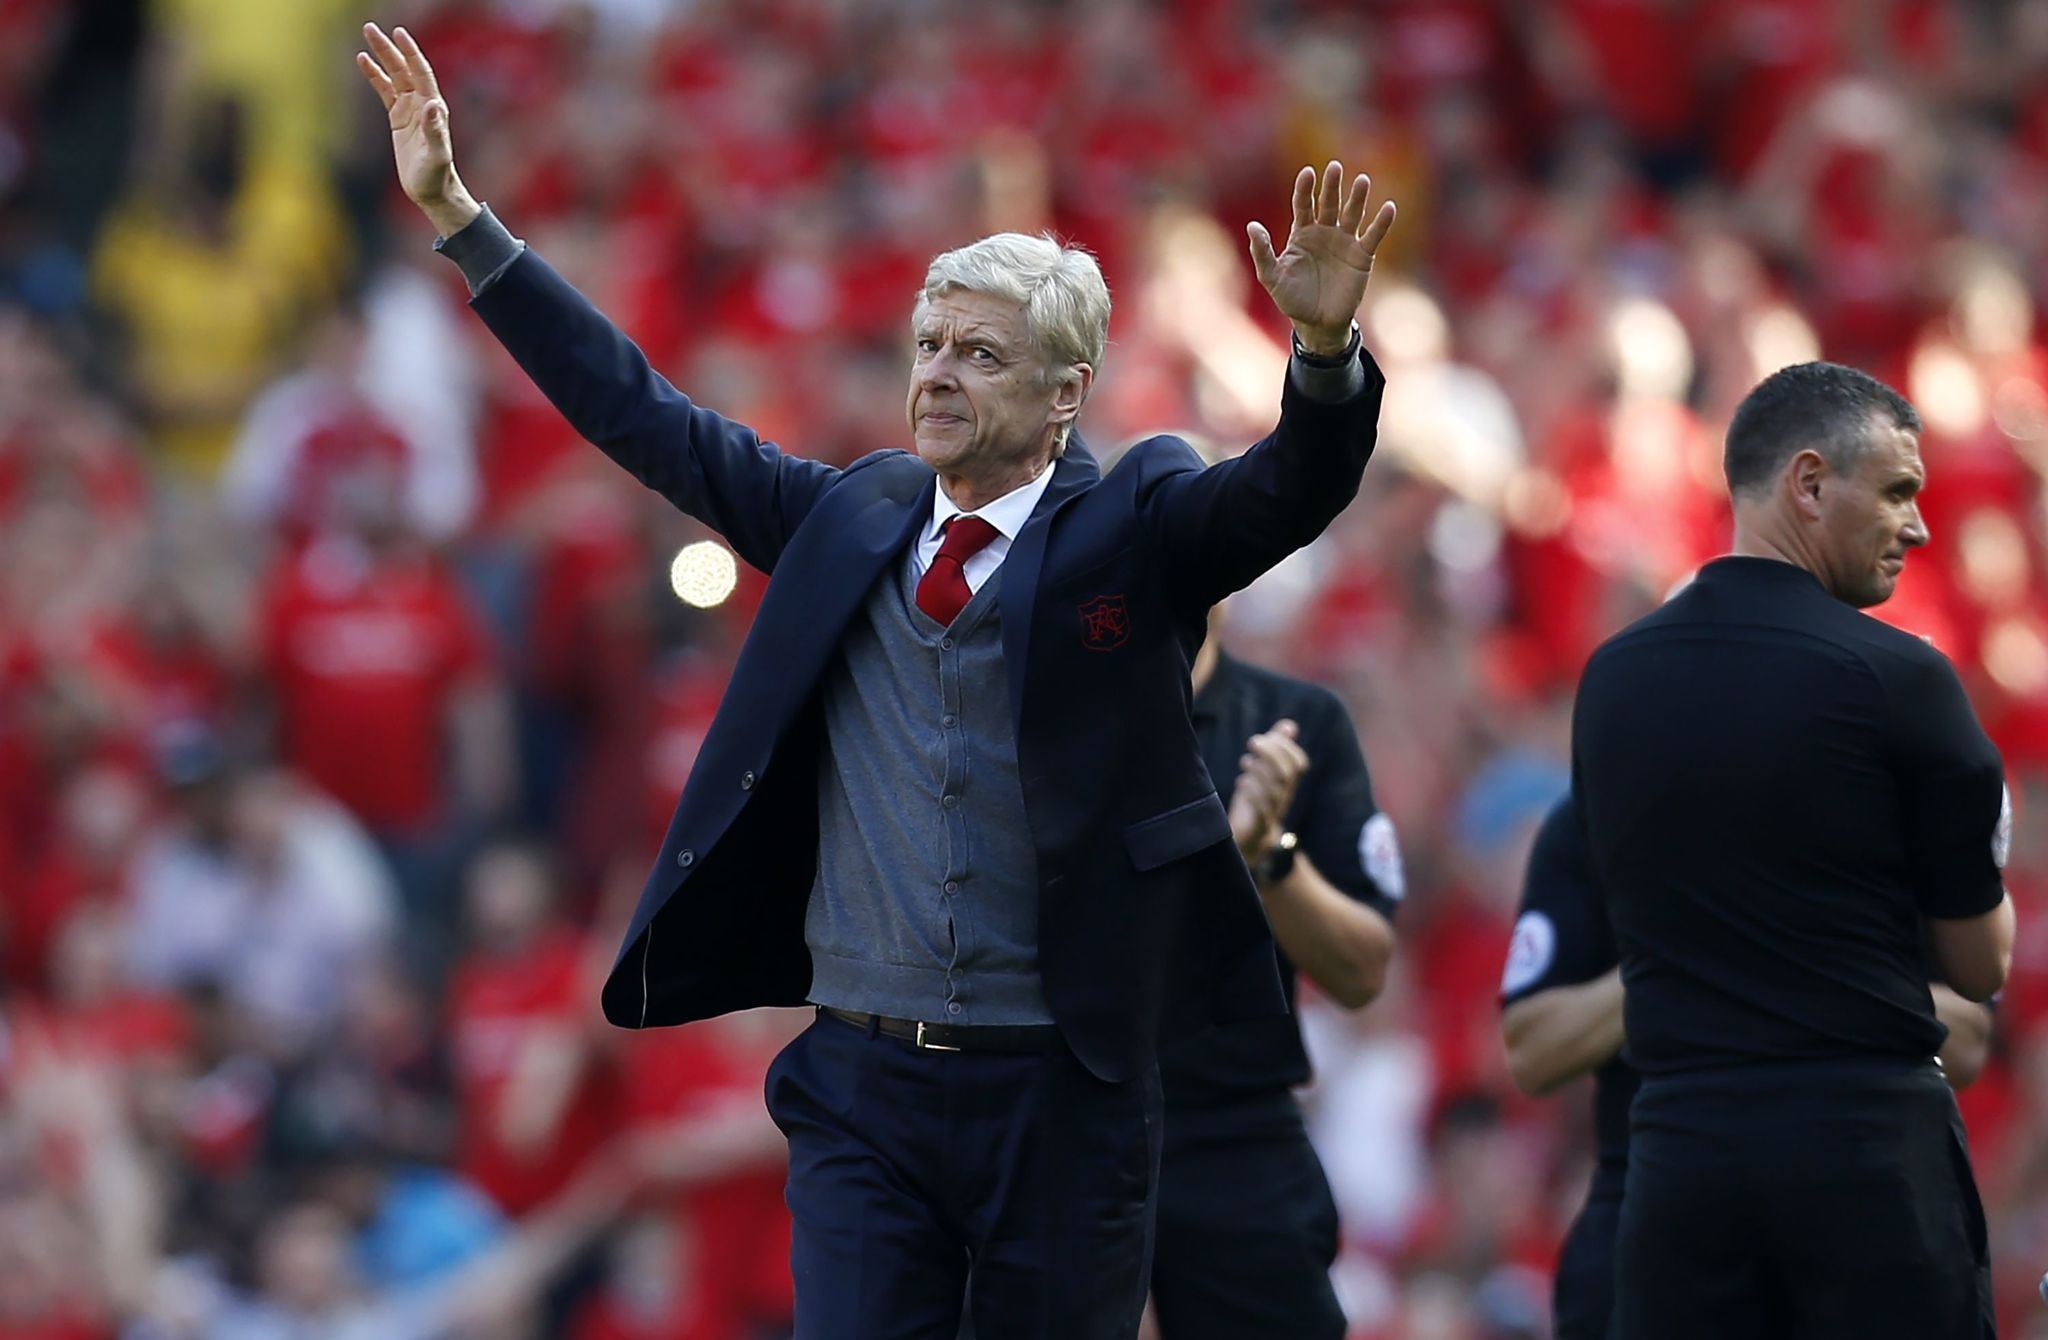 Arsenals French manager Arsene <HIT>Wenger</HIT> salutes the crowd as he arrives for the English Premier League football match between Arsenal and Burnley at the Emirates Stadium in London on May 6, 2018. Arsene <HIT>Wenger</HIT> bids farewell to a stadium he helped to build in more ways than one when he leads Arsenal at the Emirates for the final time at home to Burnley on Sunday. <HIT>Wenger</HIT>s final season after 22 years in charge is destined to end in disappointment after Thursdays Europa League semi-final exit. / AFP PHOTO / IKIMAGES / Ian KINGTON / RESTRICTED TO EDITORIAL USE. No use with unauthorized audio, video, data, fixture lists, club/league logos or live services. Online in-match use limited to 45 images, no video emulation. No use in betting, games or single club/league/player publications. /